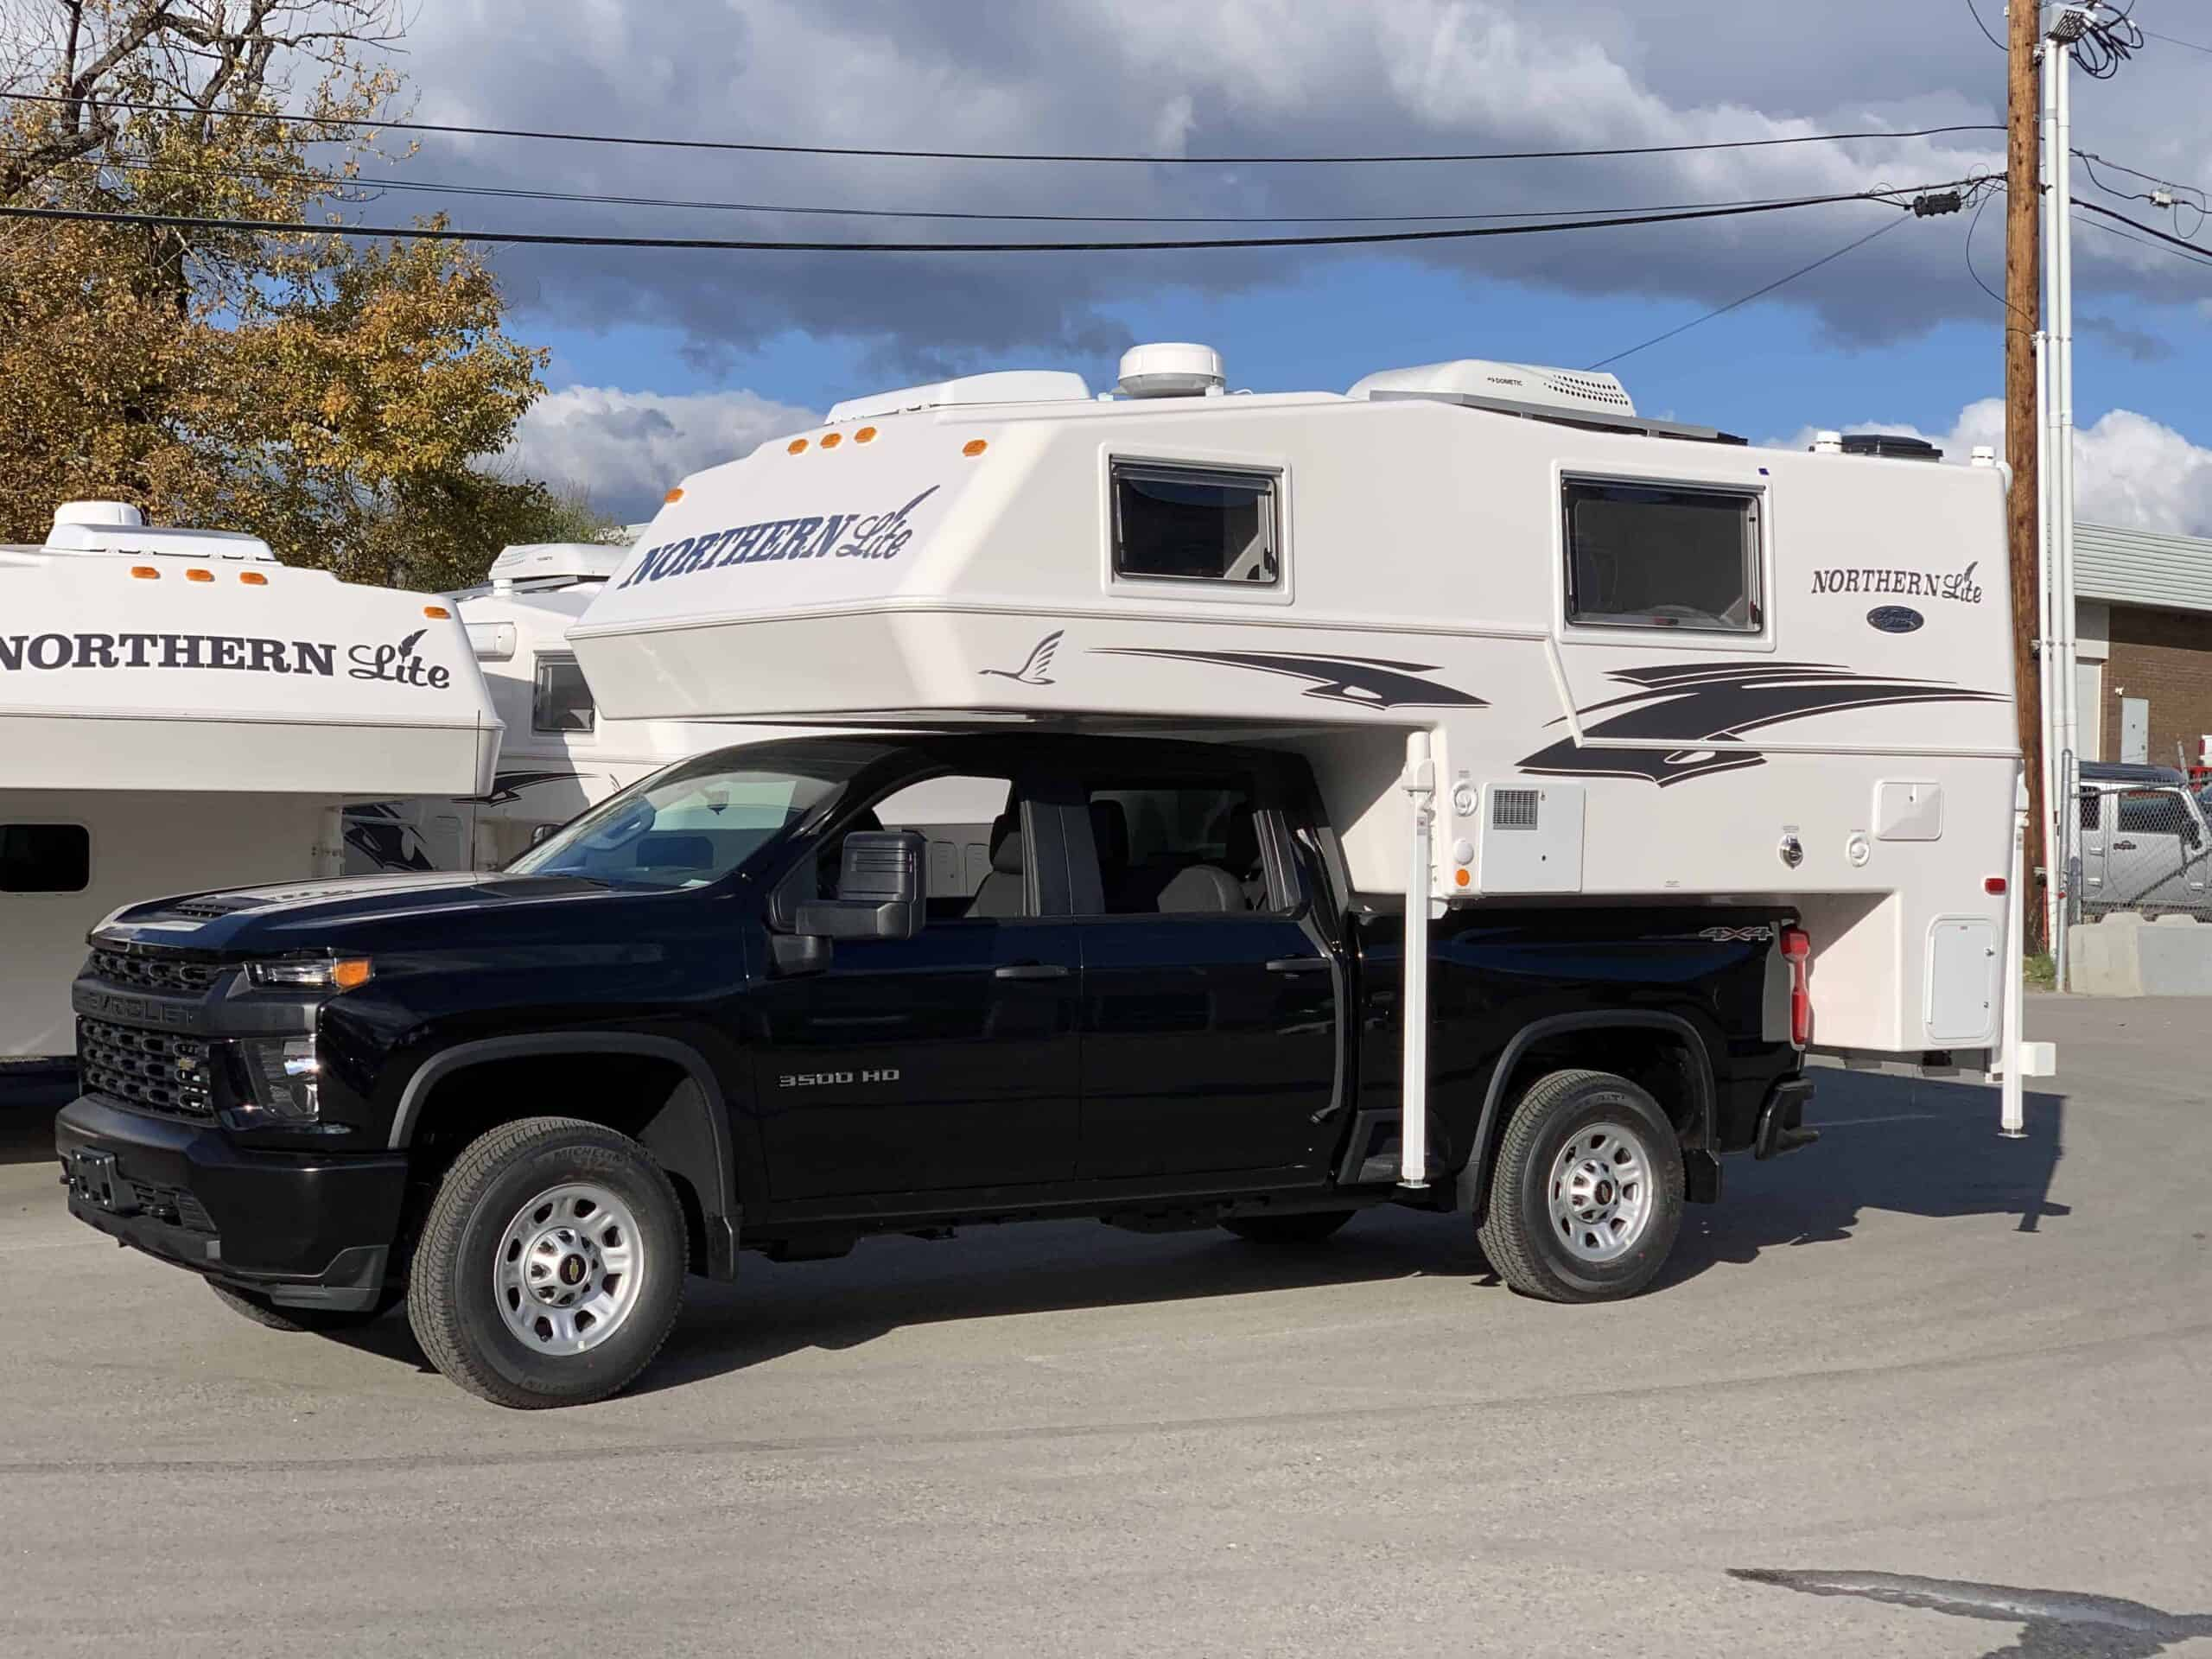 2020 Chevy 3500 with Northern Lite Truck Camper